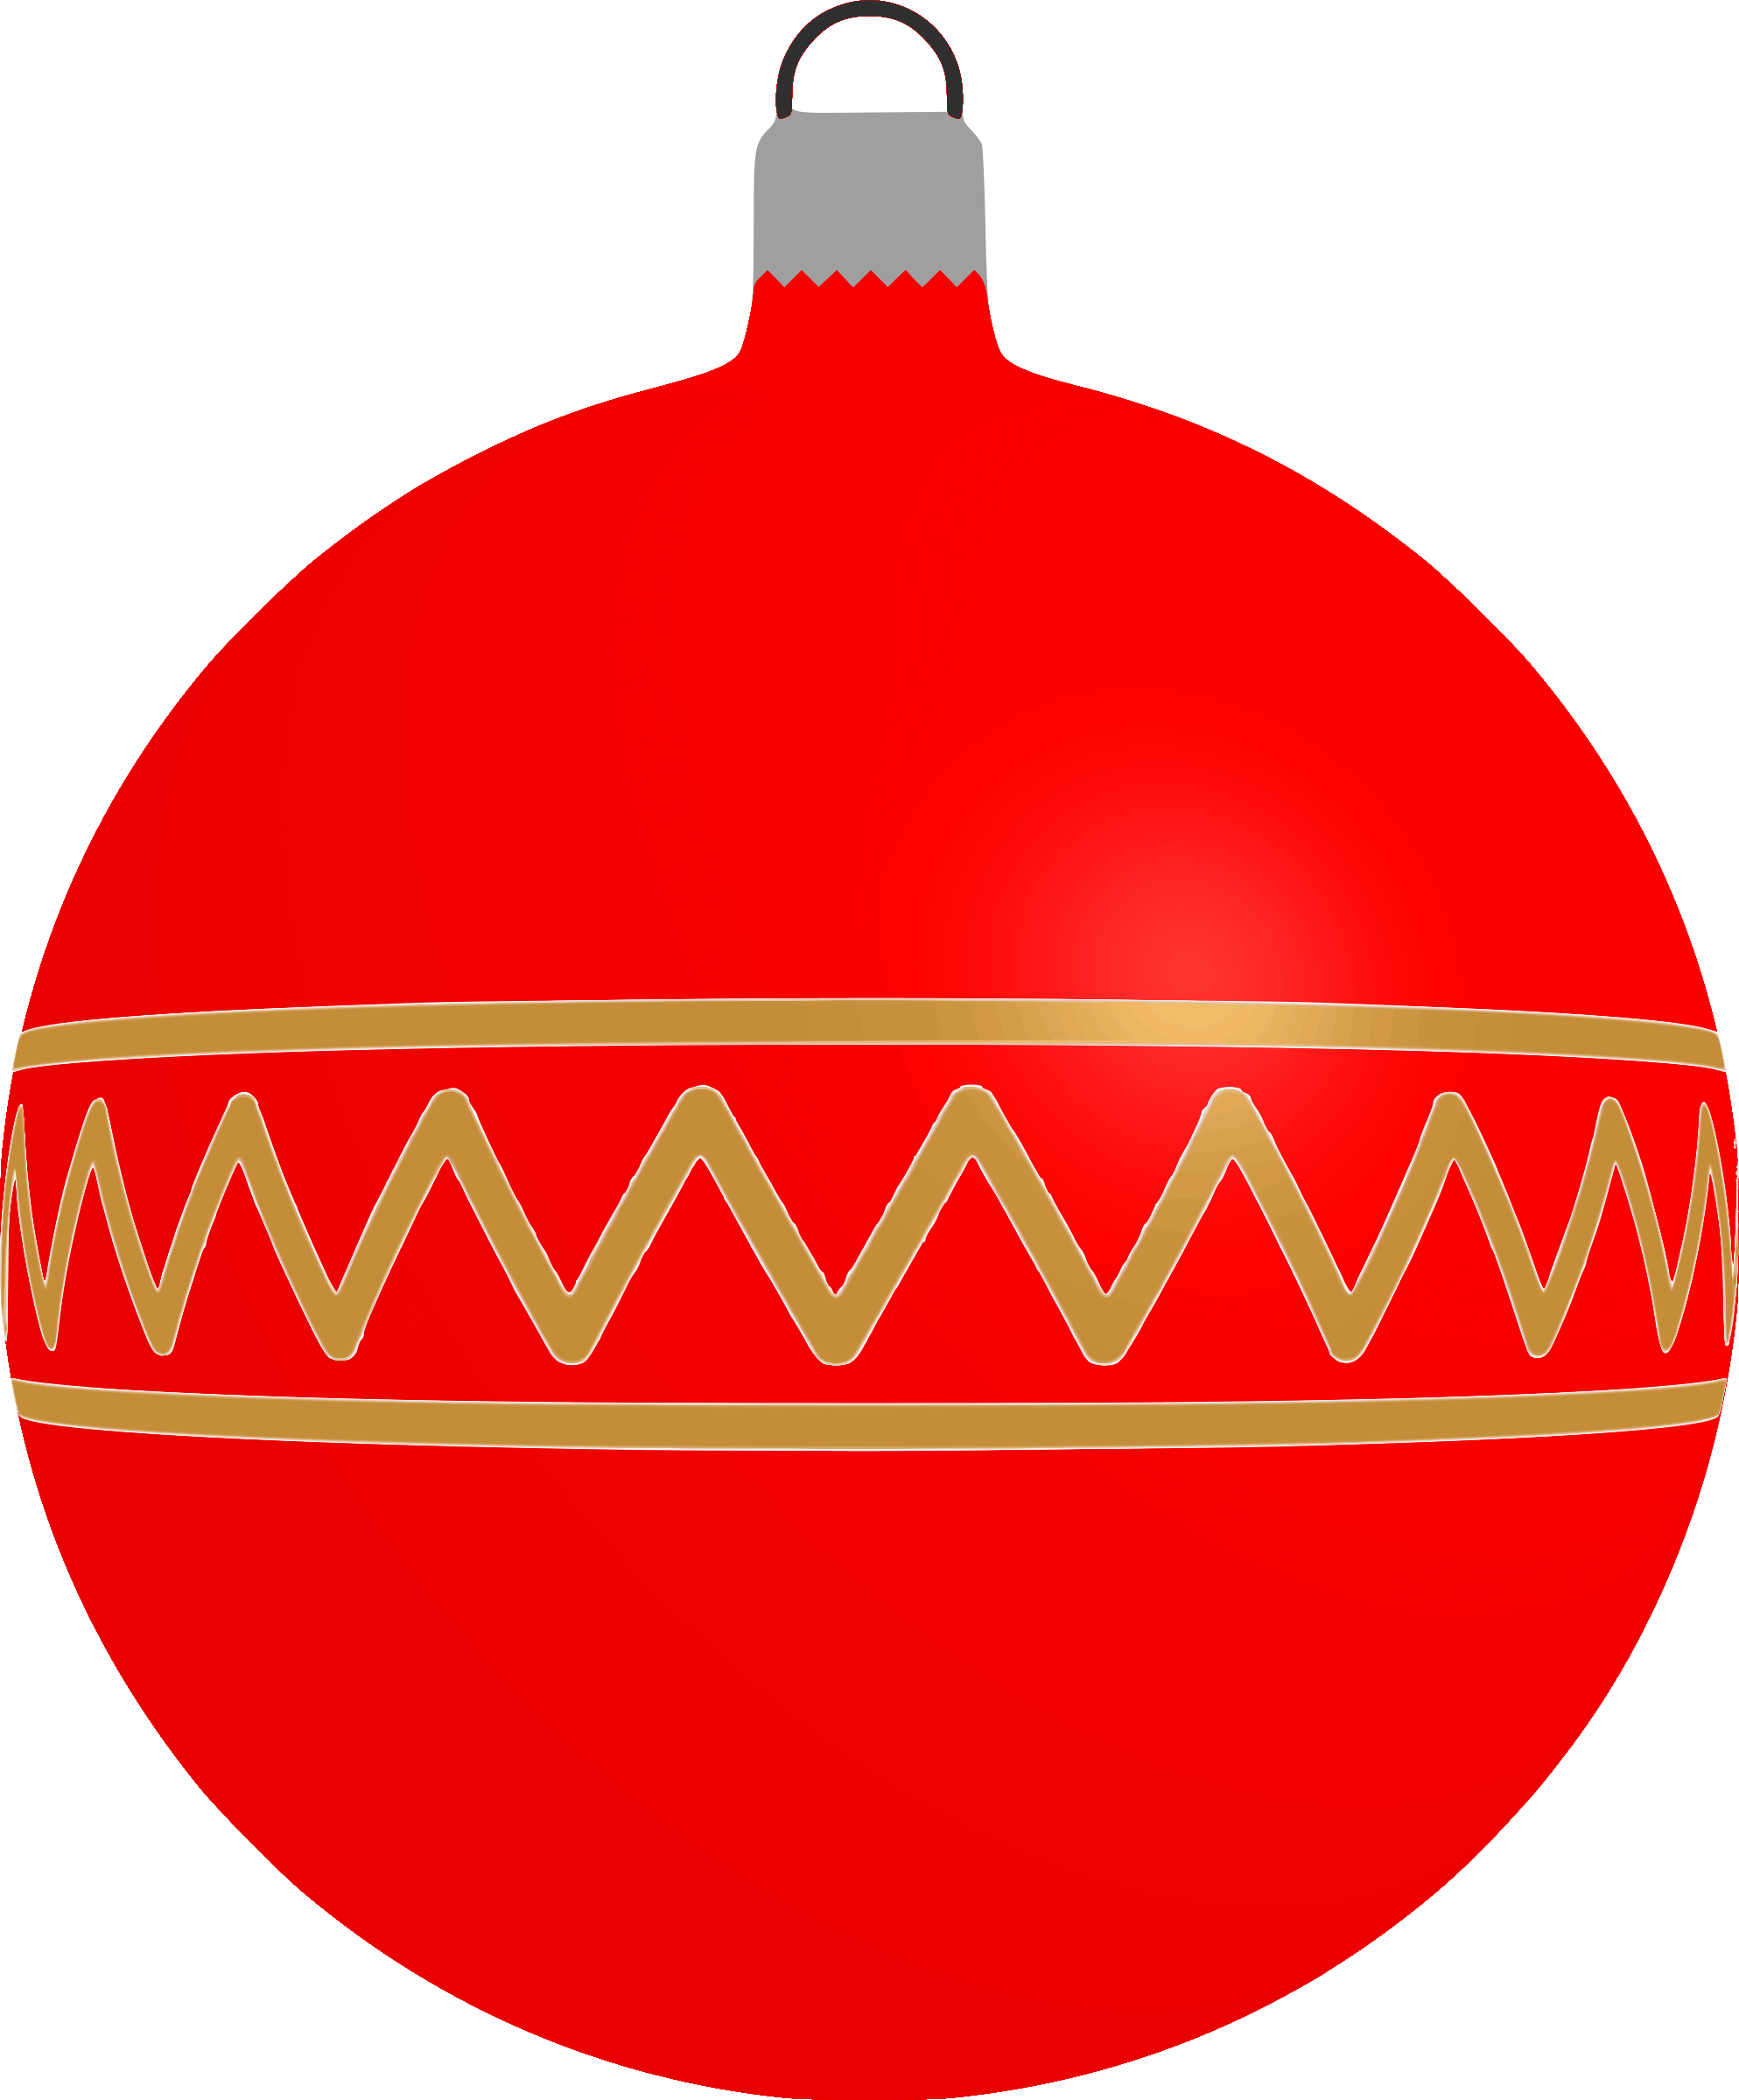 Patterned bauble 1 (red) by Firkin